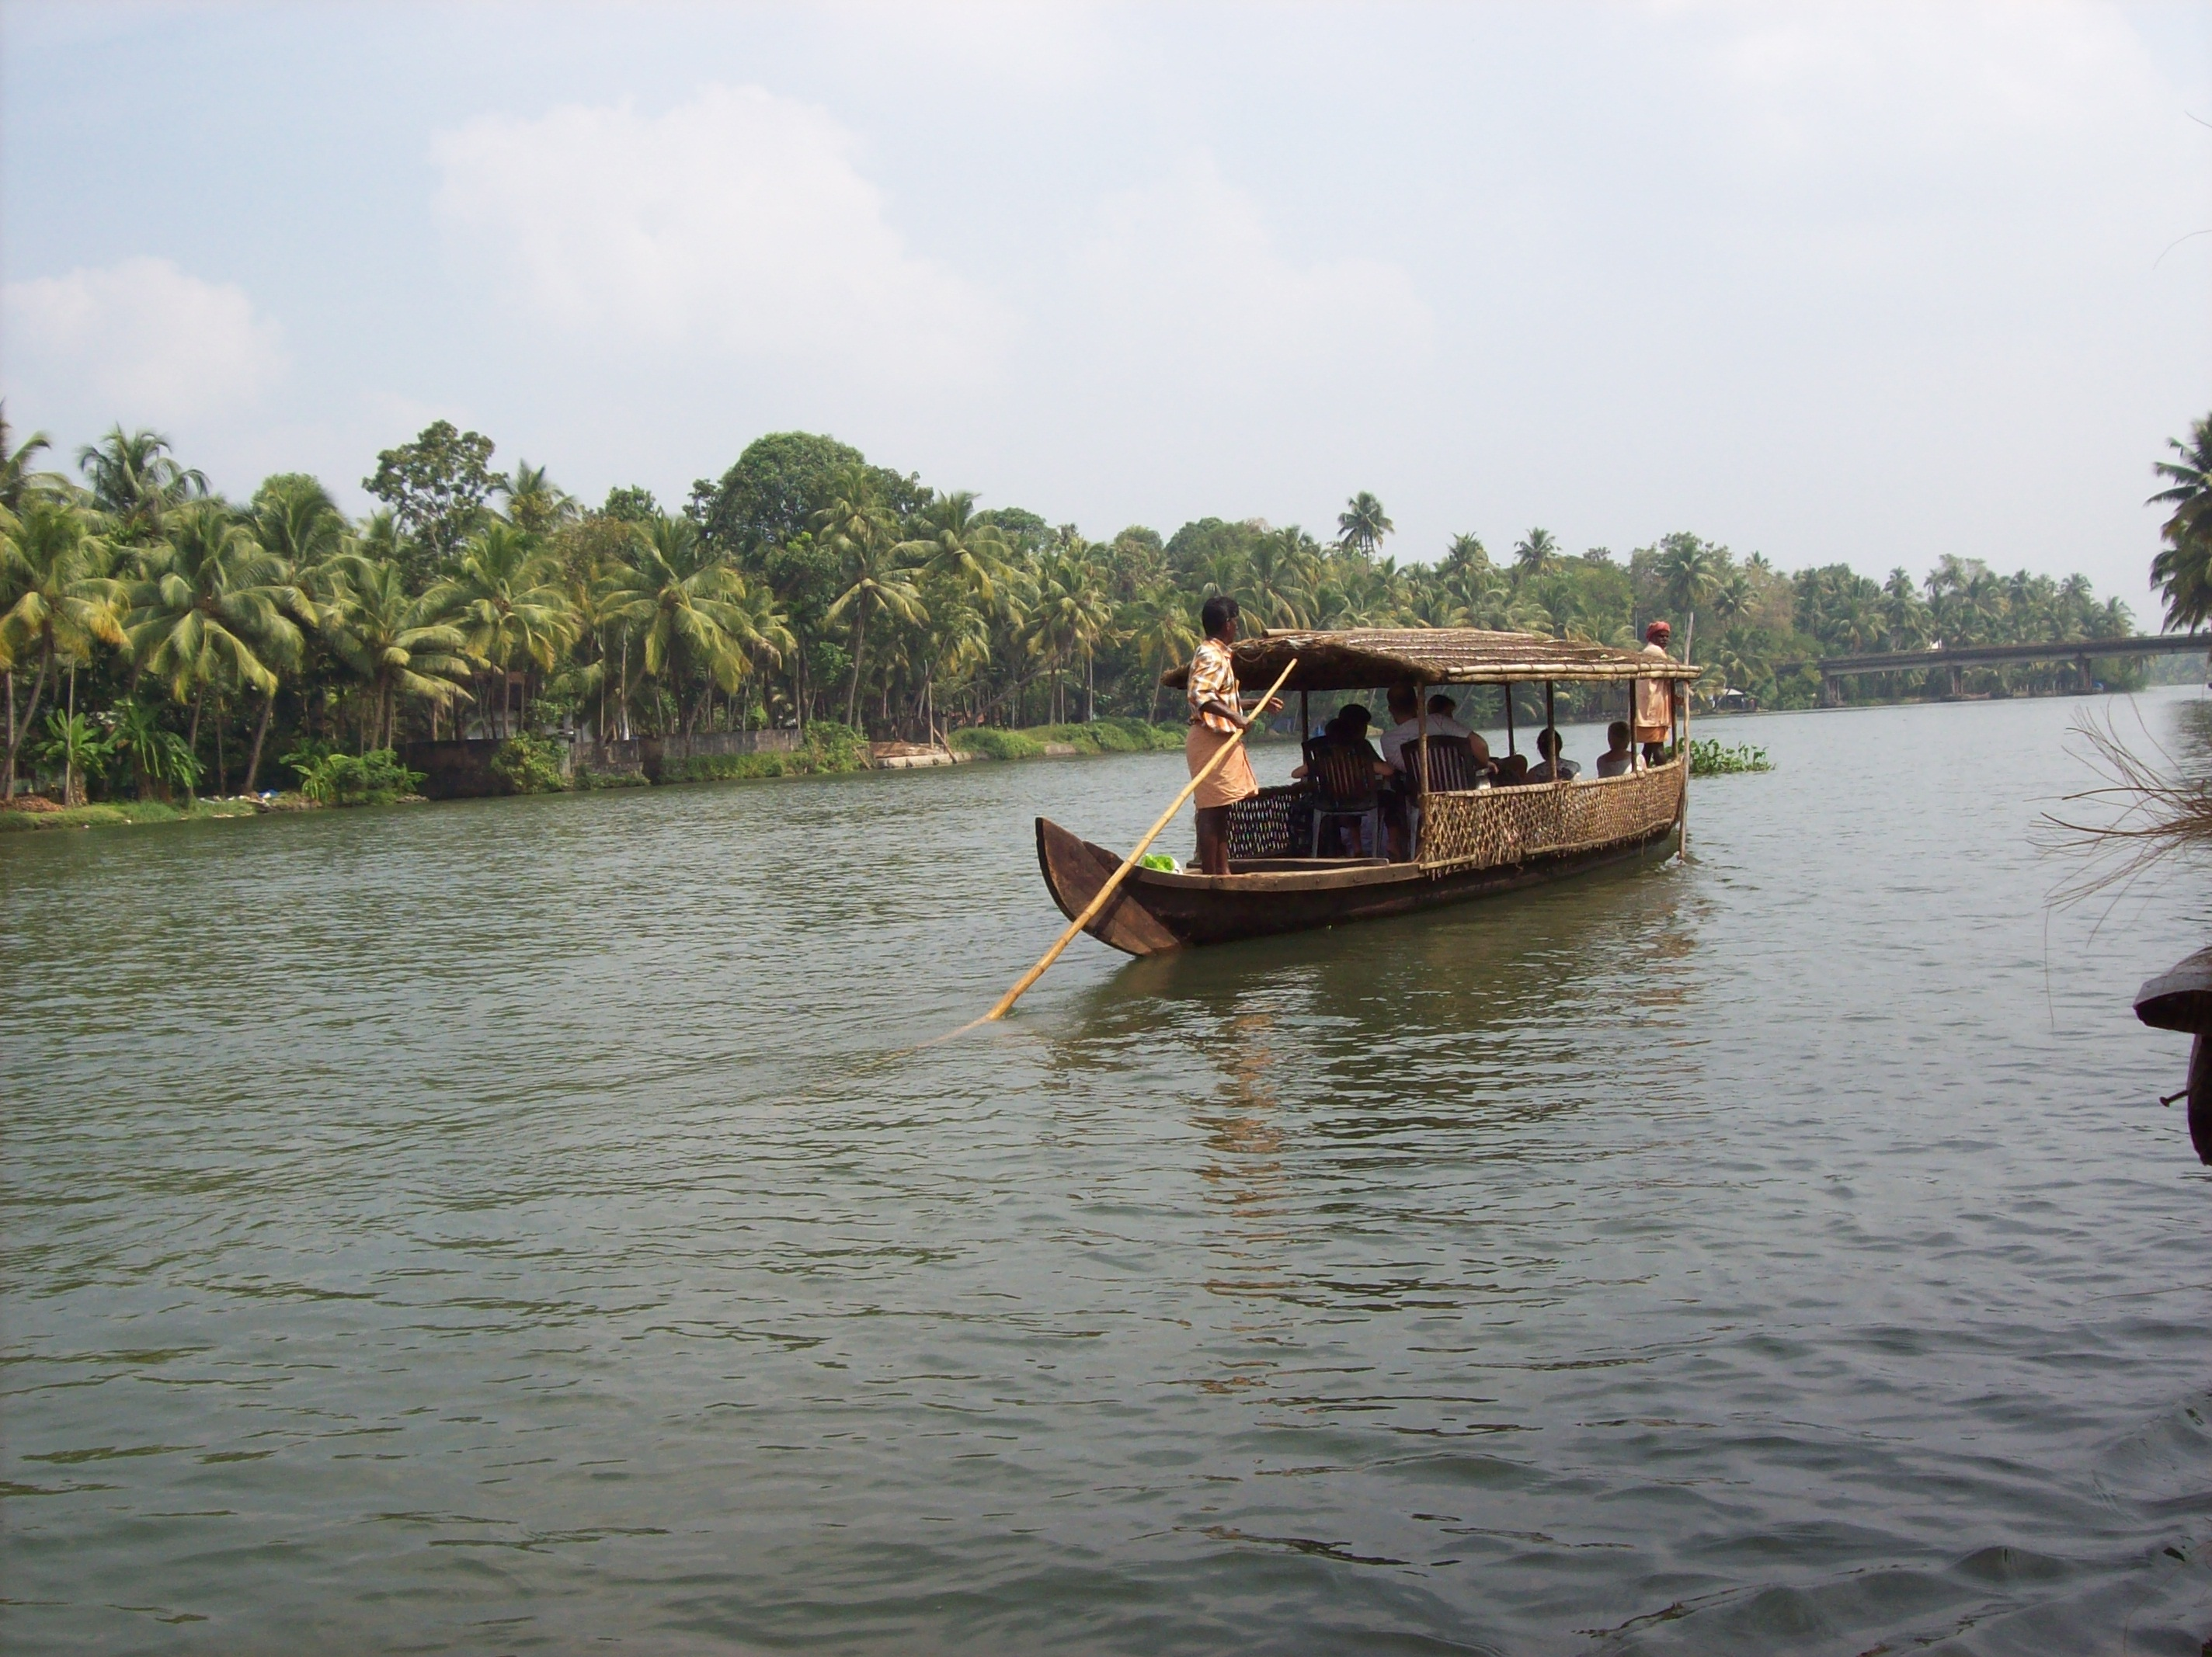 Indian river transport, Boat, Boating, India, River, HQ Photo